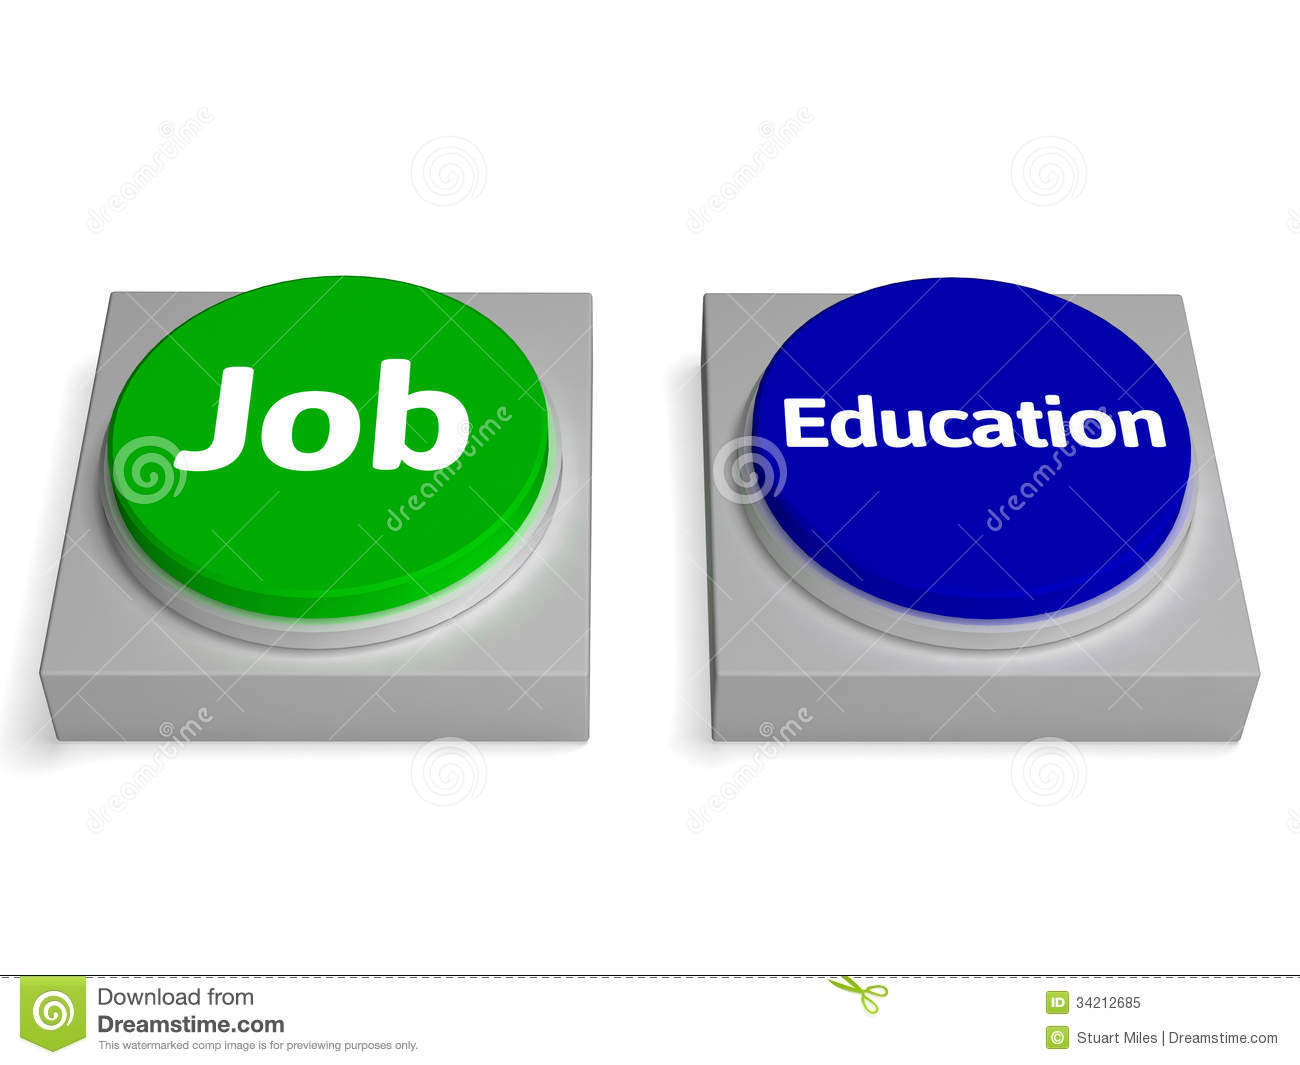 What jobs/education is needed to work with stocks?